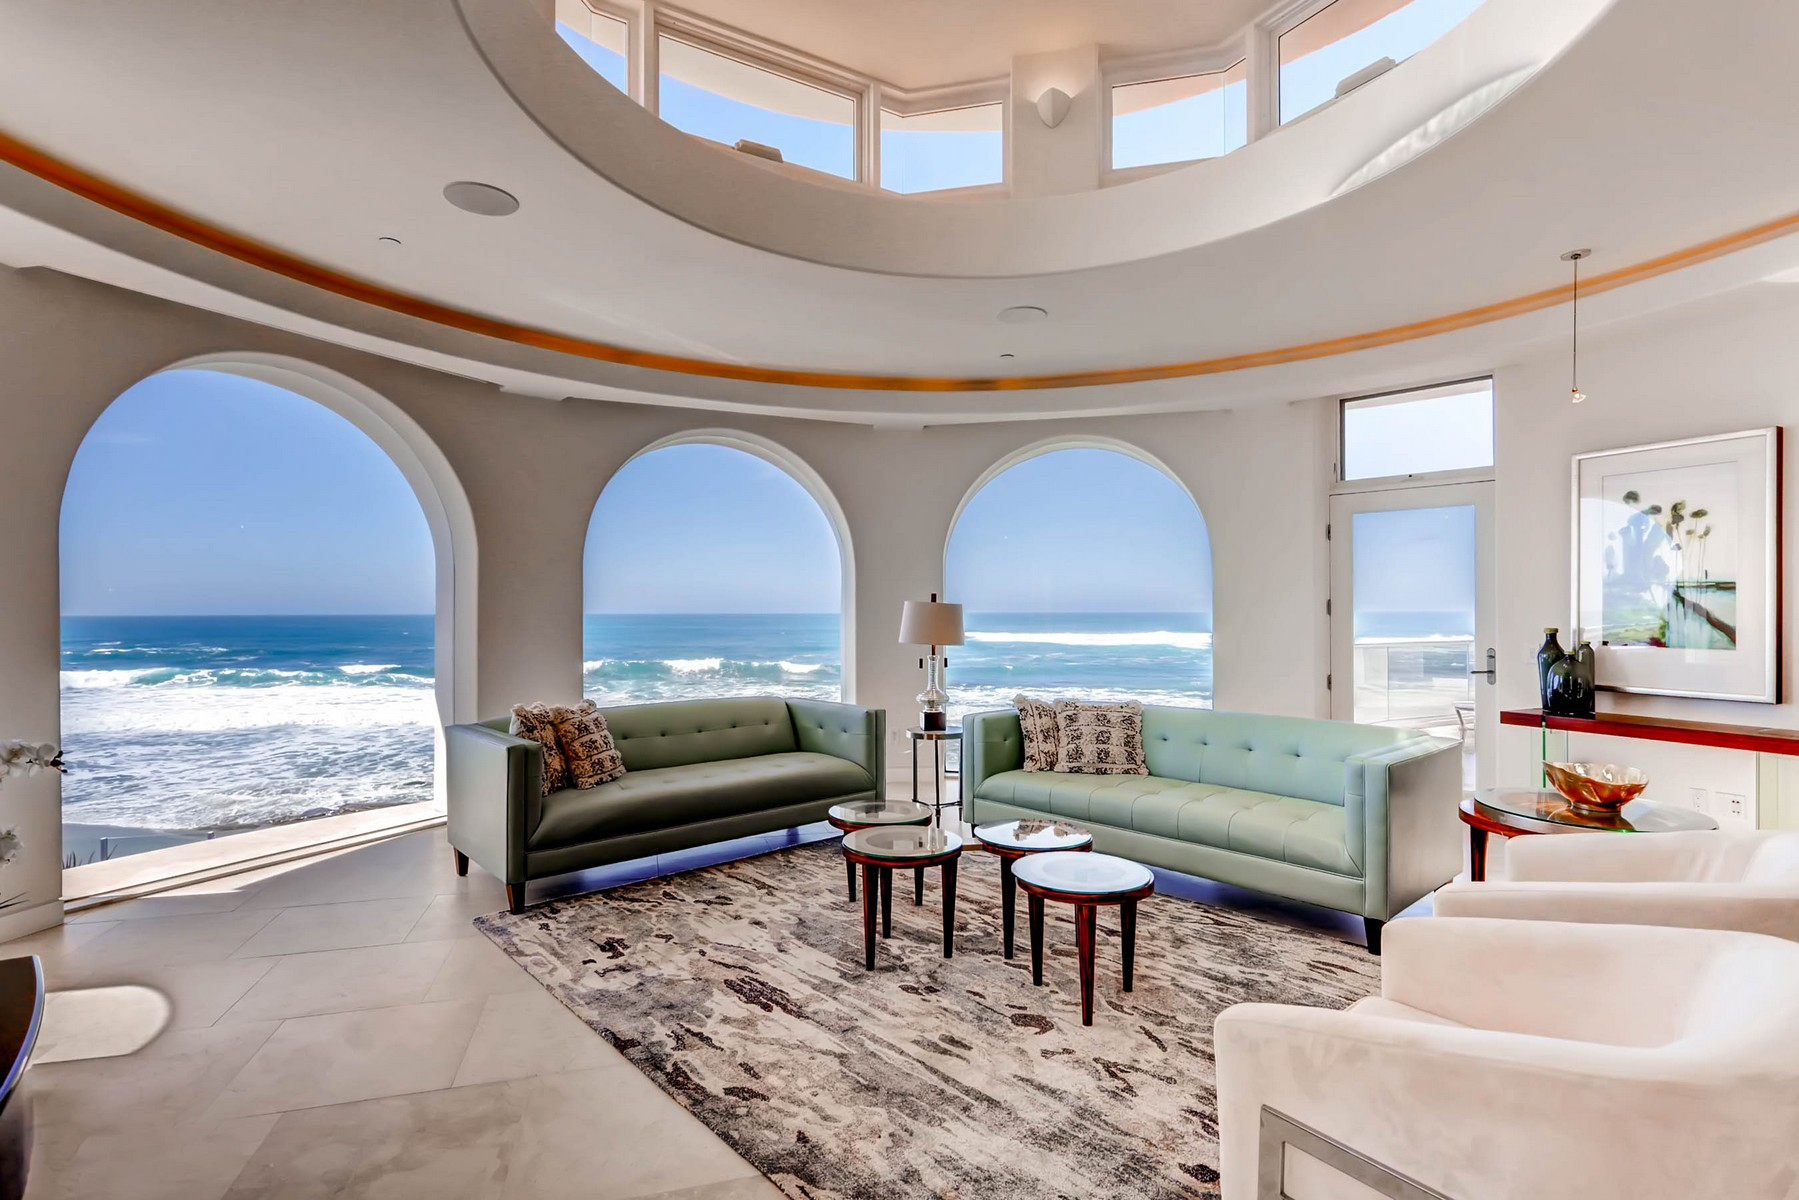 Additional photo for property listing at 7400 Vista Del Mar  La Jolla, Californie 92037 États-Unis